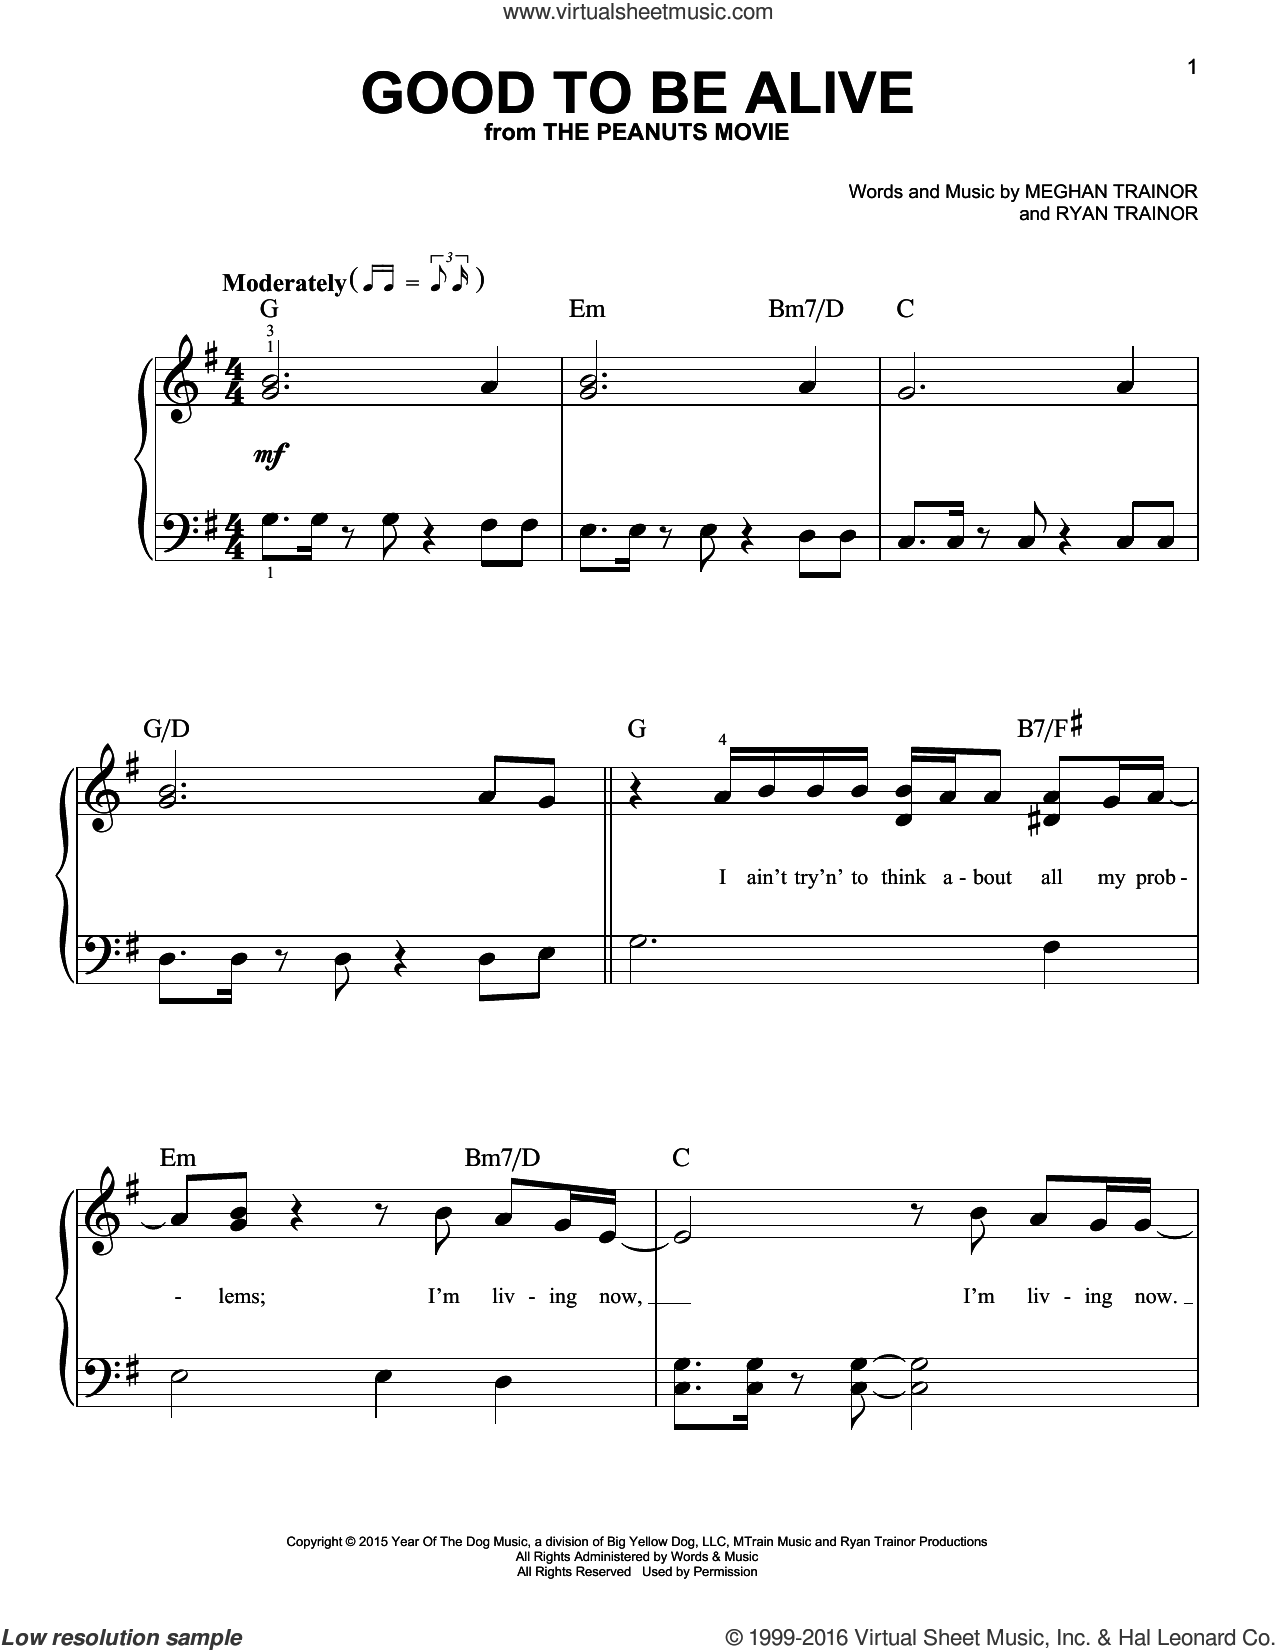 Good To Be Alive sheet music for piano solo by Ryan Trainor